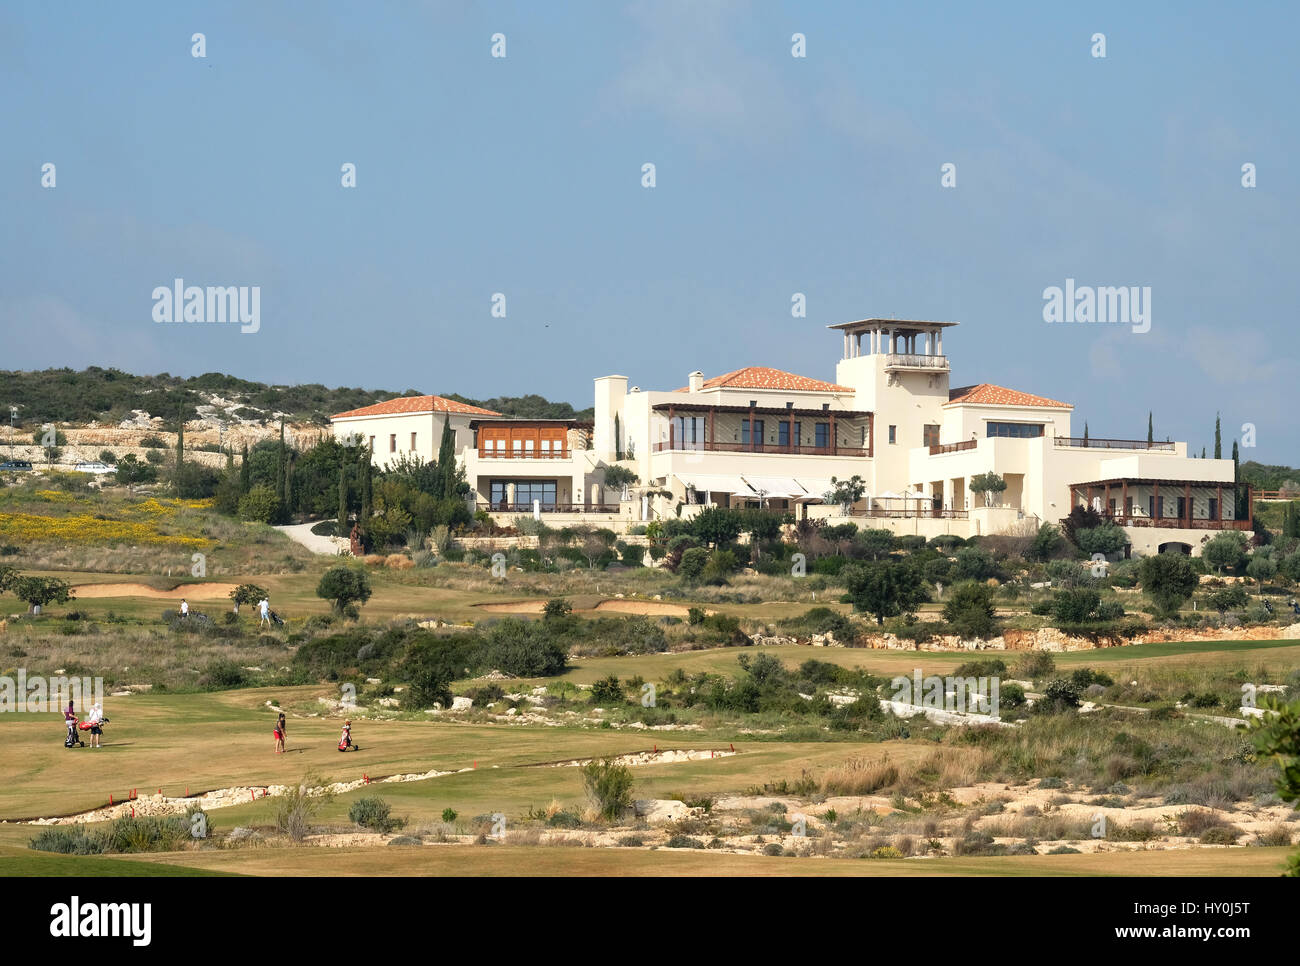 Golfers in the distance playing at the Elea Estates golf course in Paphos Southern Cyprus. - Stock Image